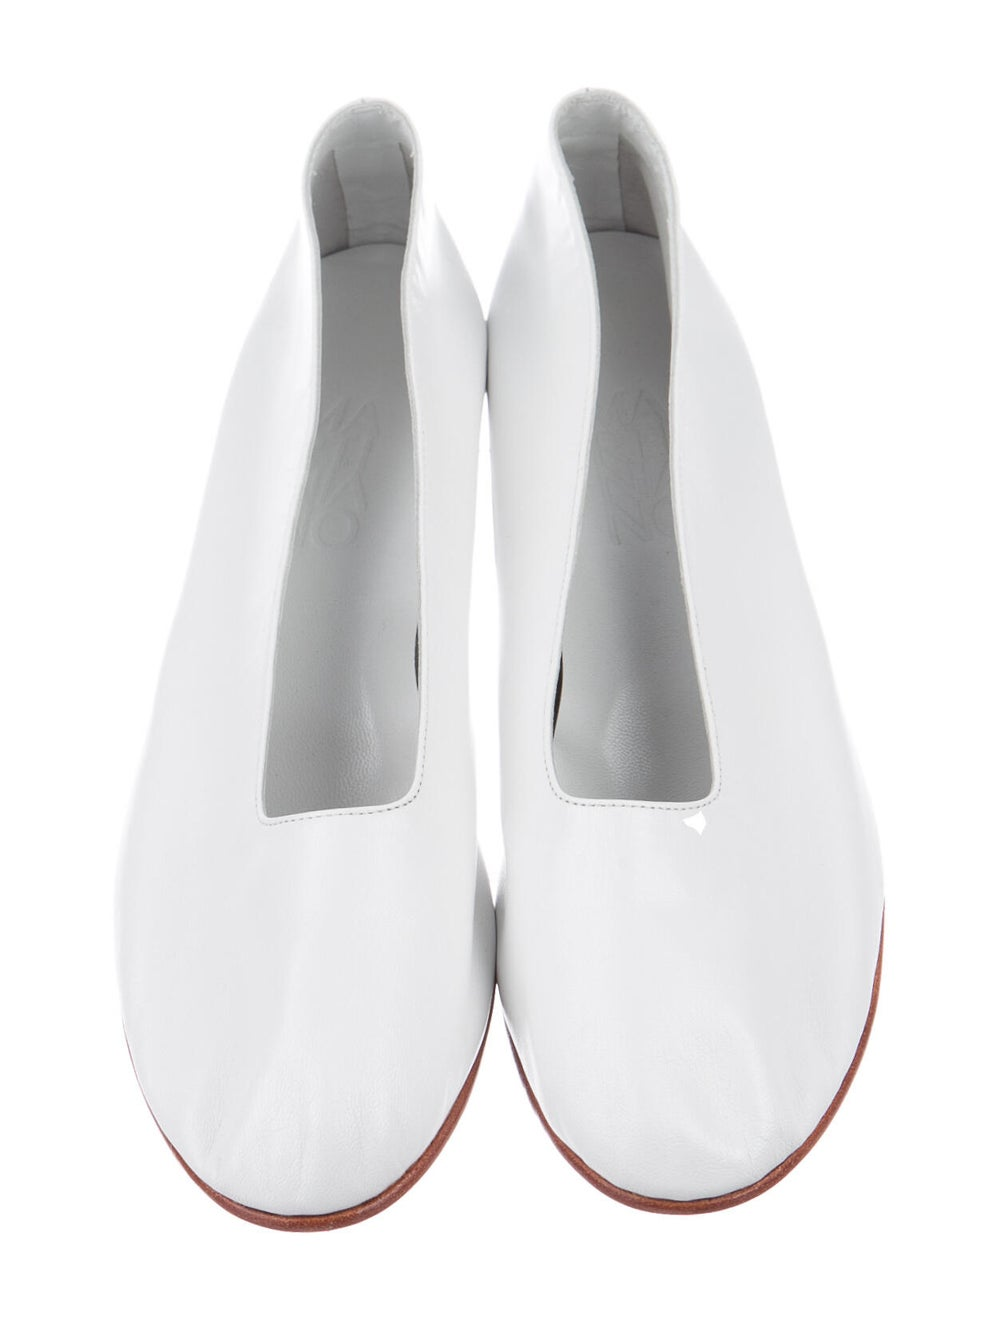 Martiniano Leather Pumps White - image 3